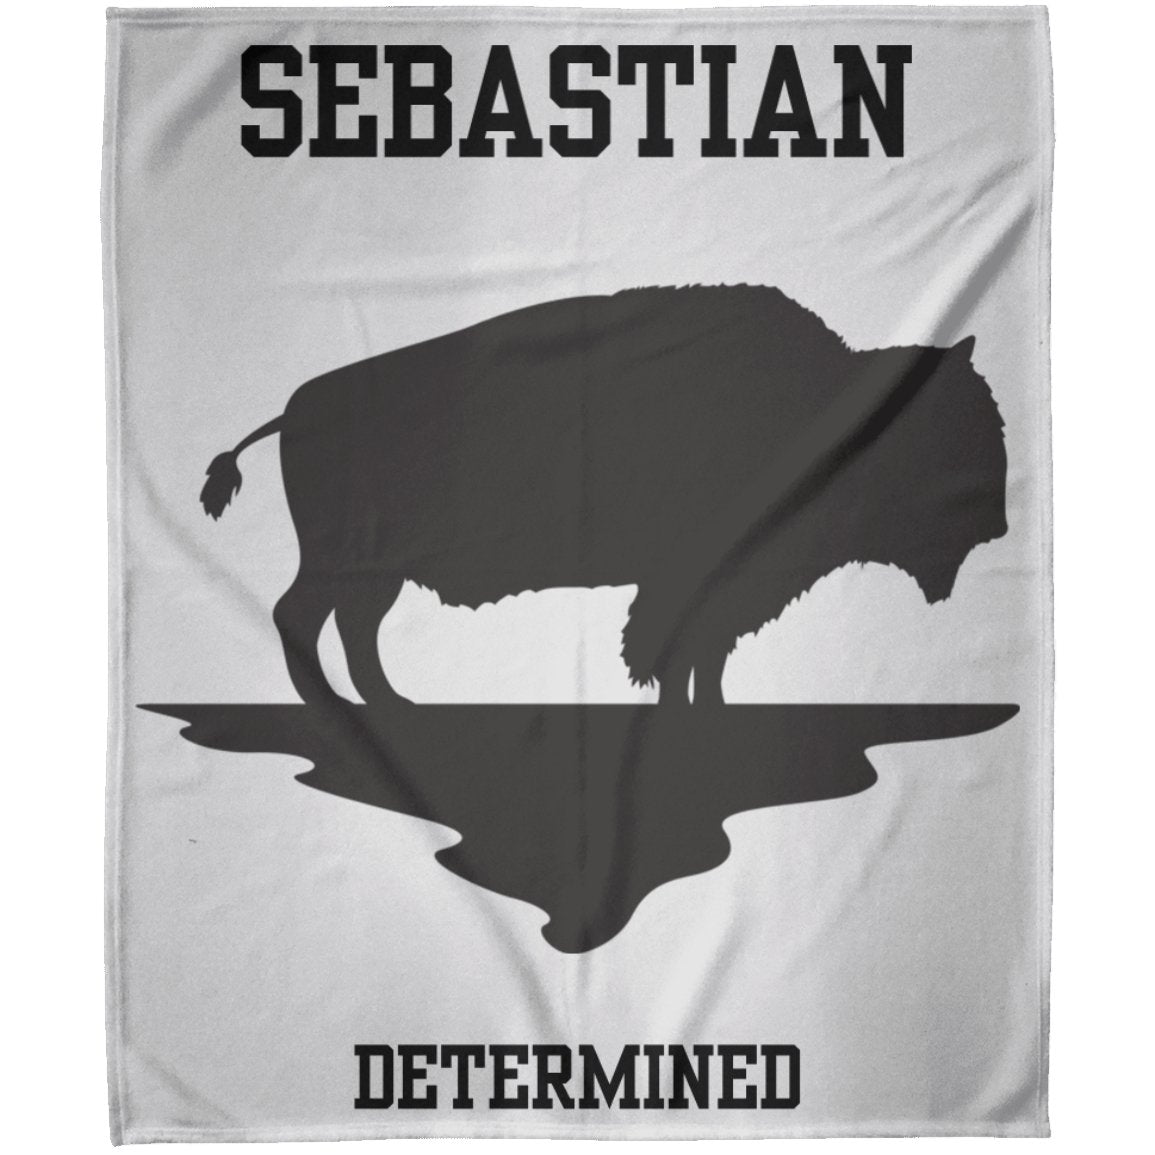 "Blankets ""Determined"" Personalized Arctic Fleece Blanket - ZERO TO THREE CLUB Blankets"